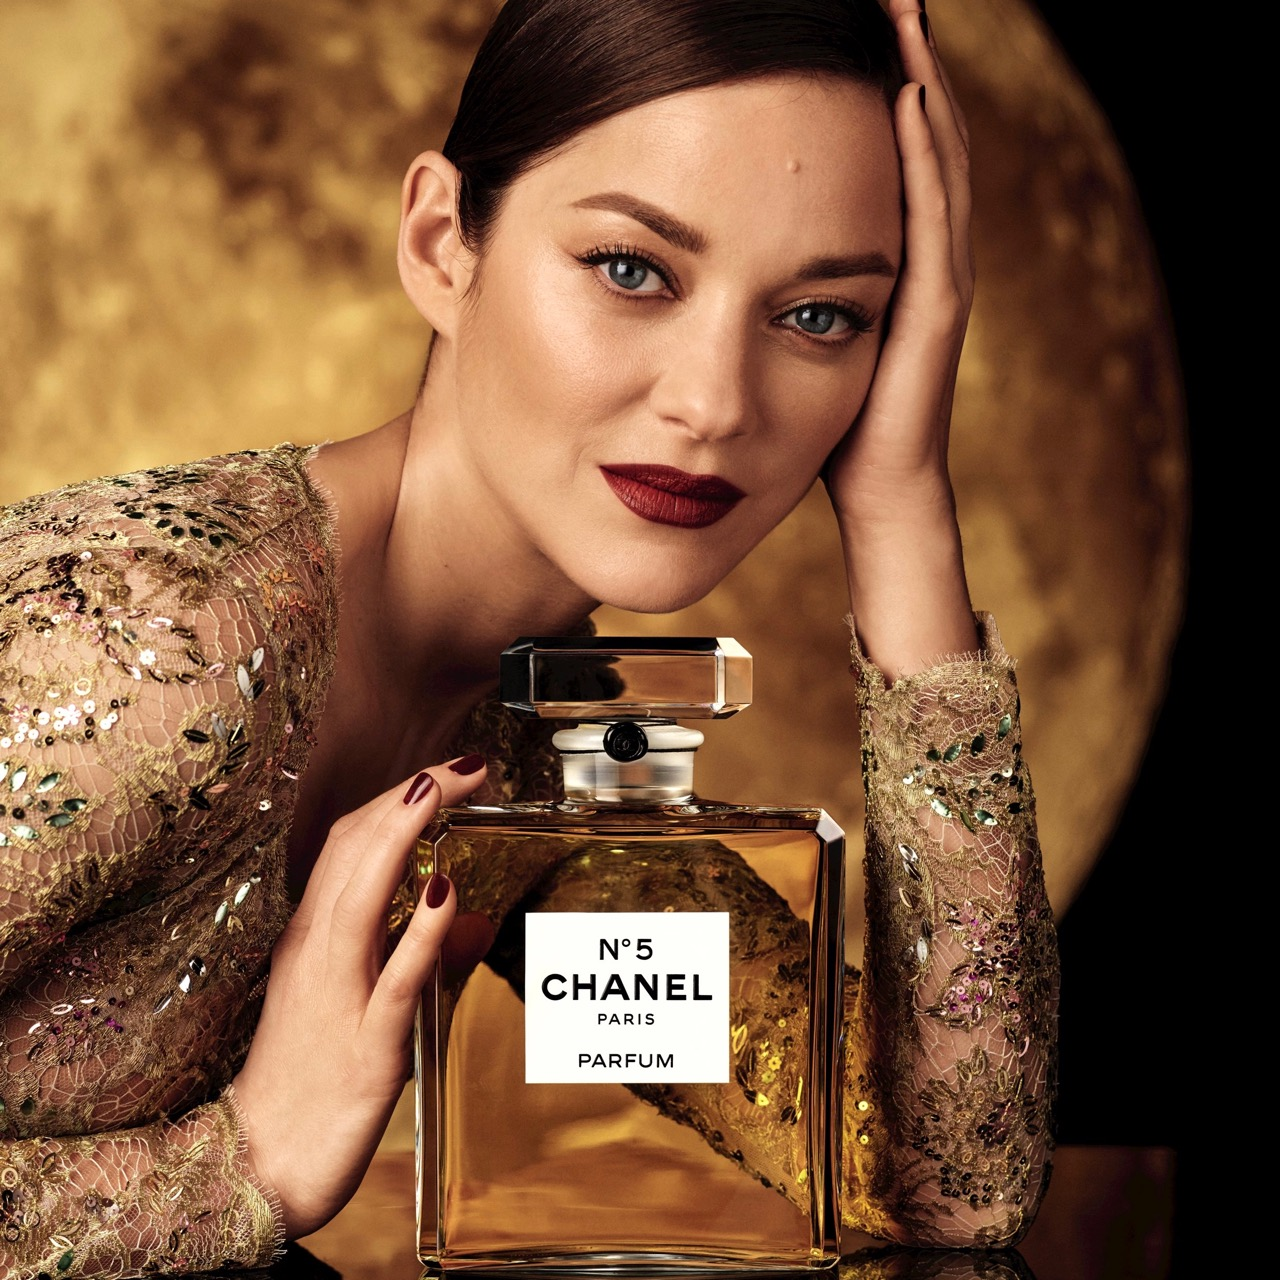 Dance on the moon with CHANEL N°5